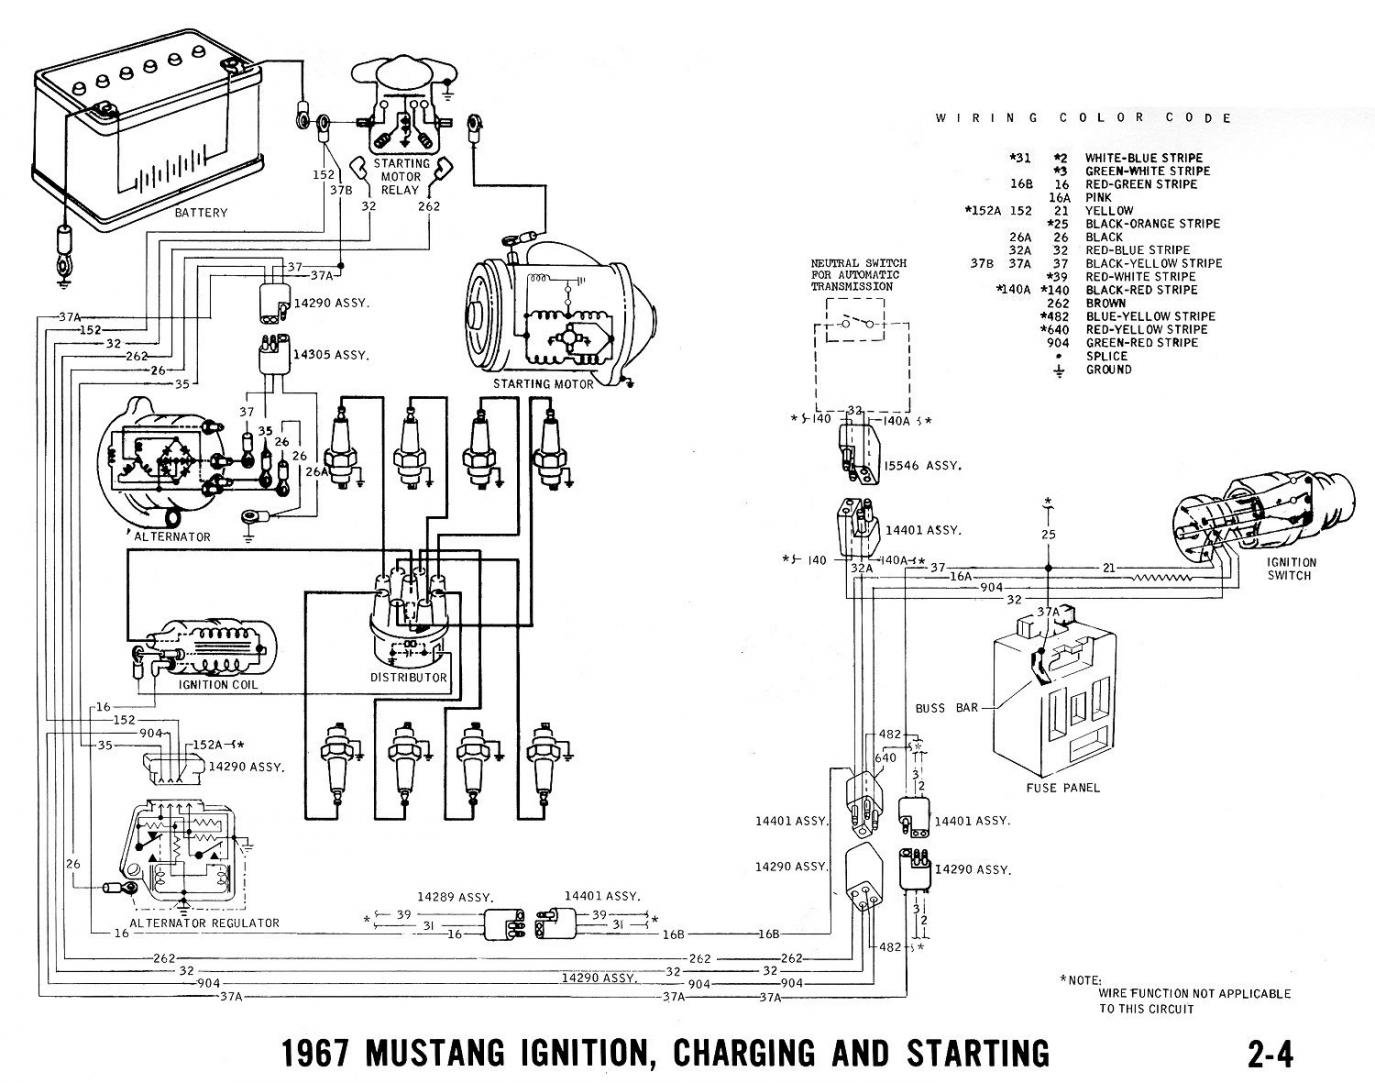 1974 ford f100 ignition switch diagrama de cableado